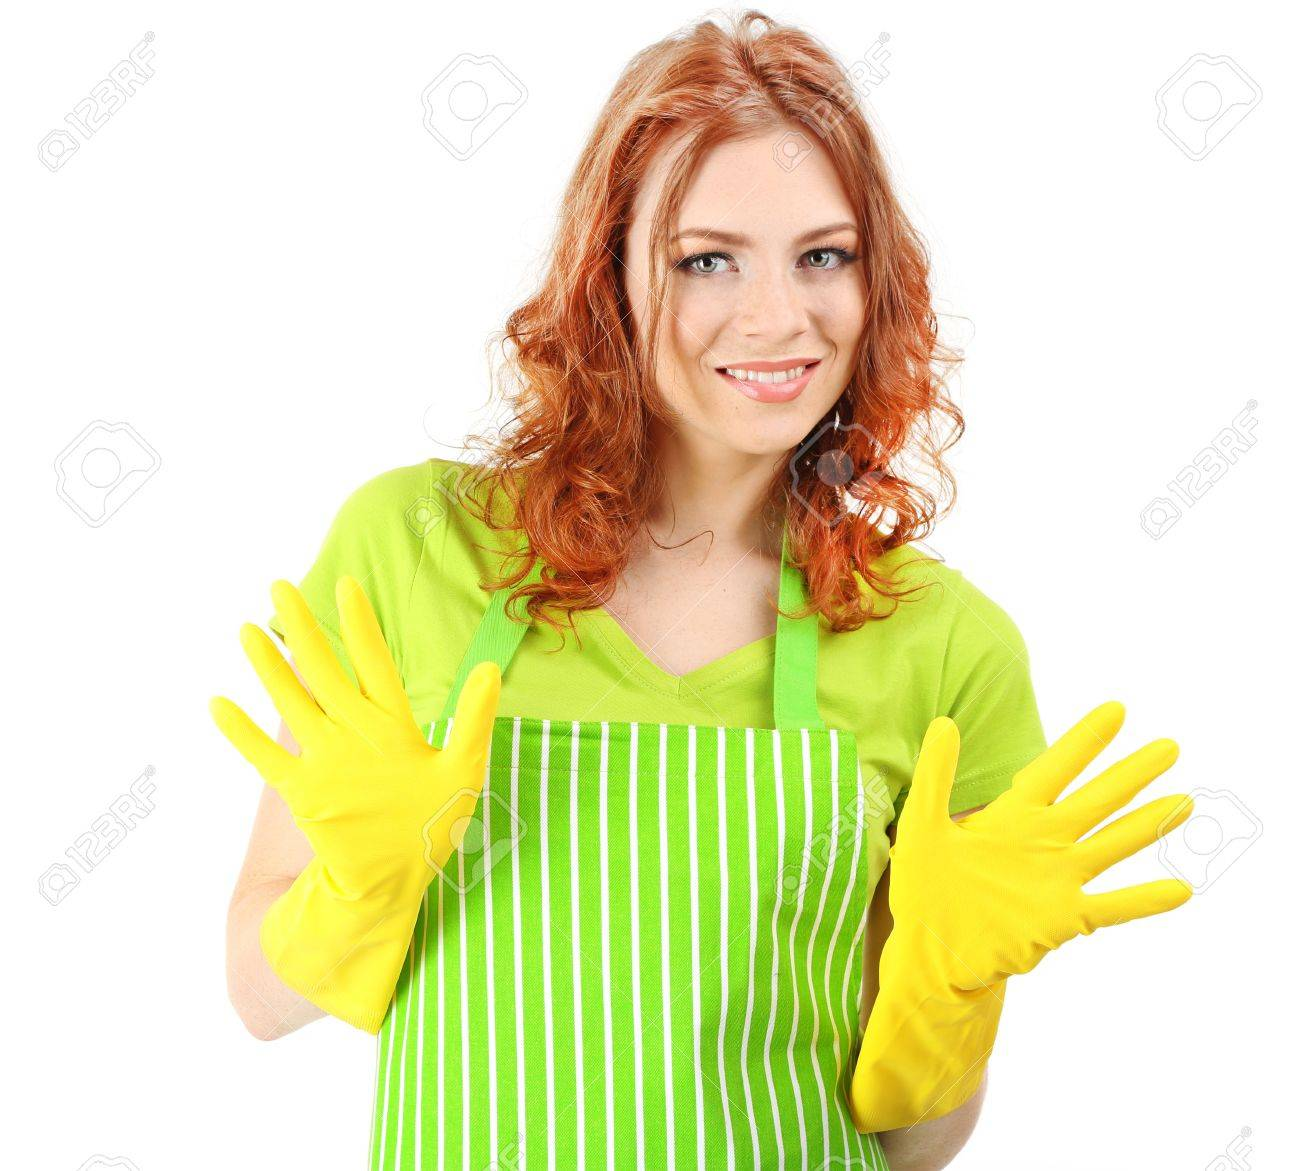 White apron project - White Apron Green Thumb Stock Photo Young Woman Wearing Green Apron And Rubber Gloves Isolated